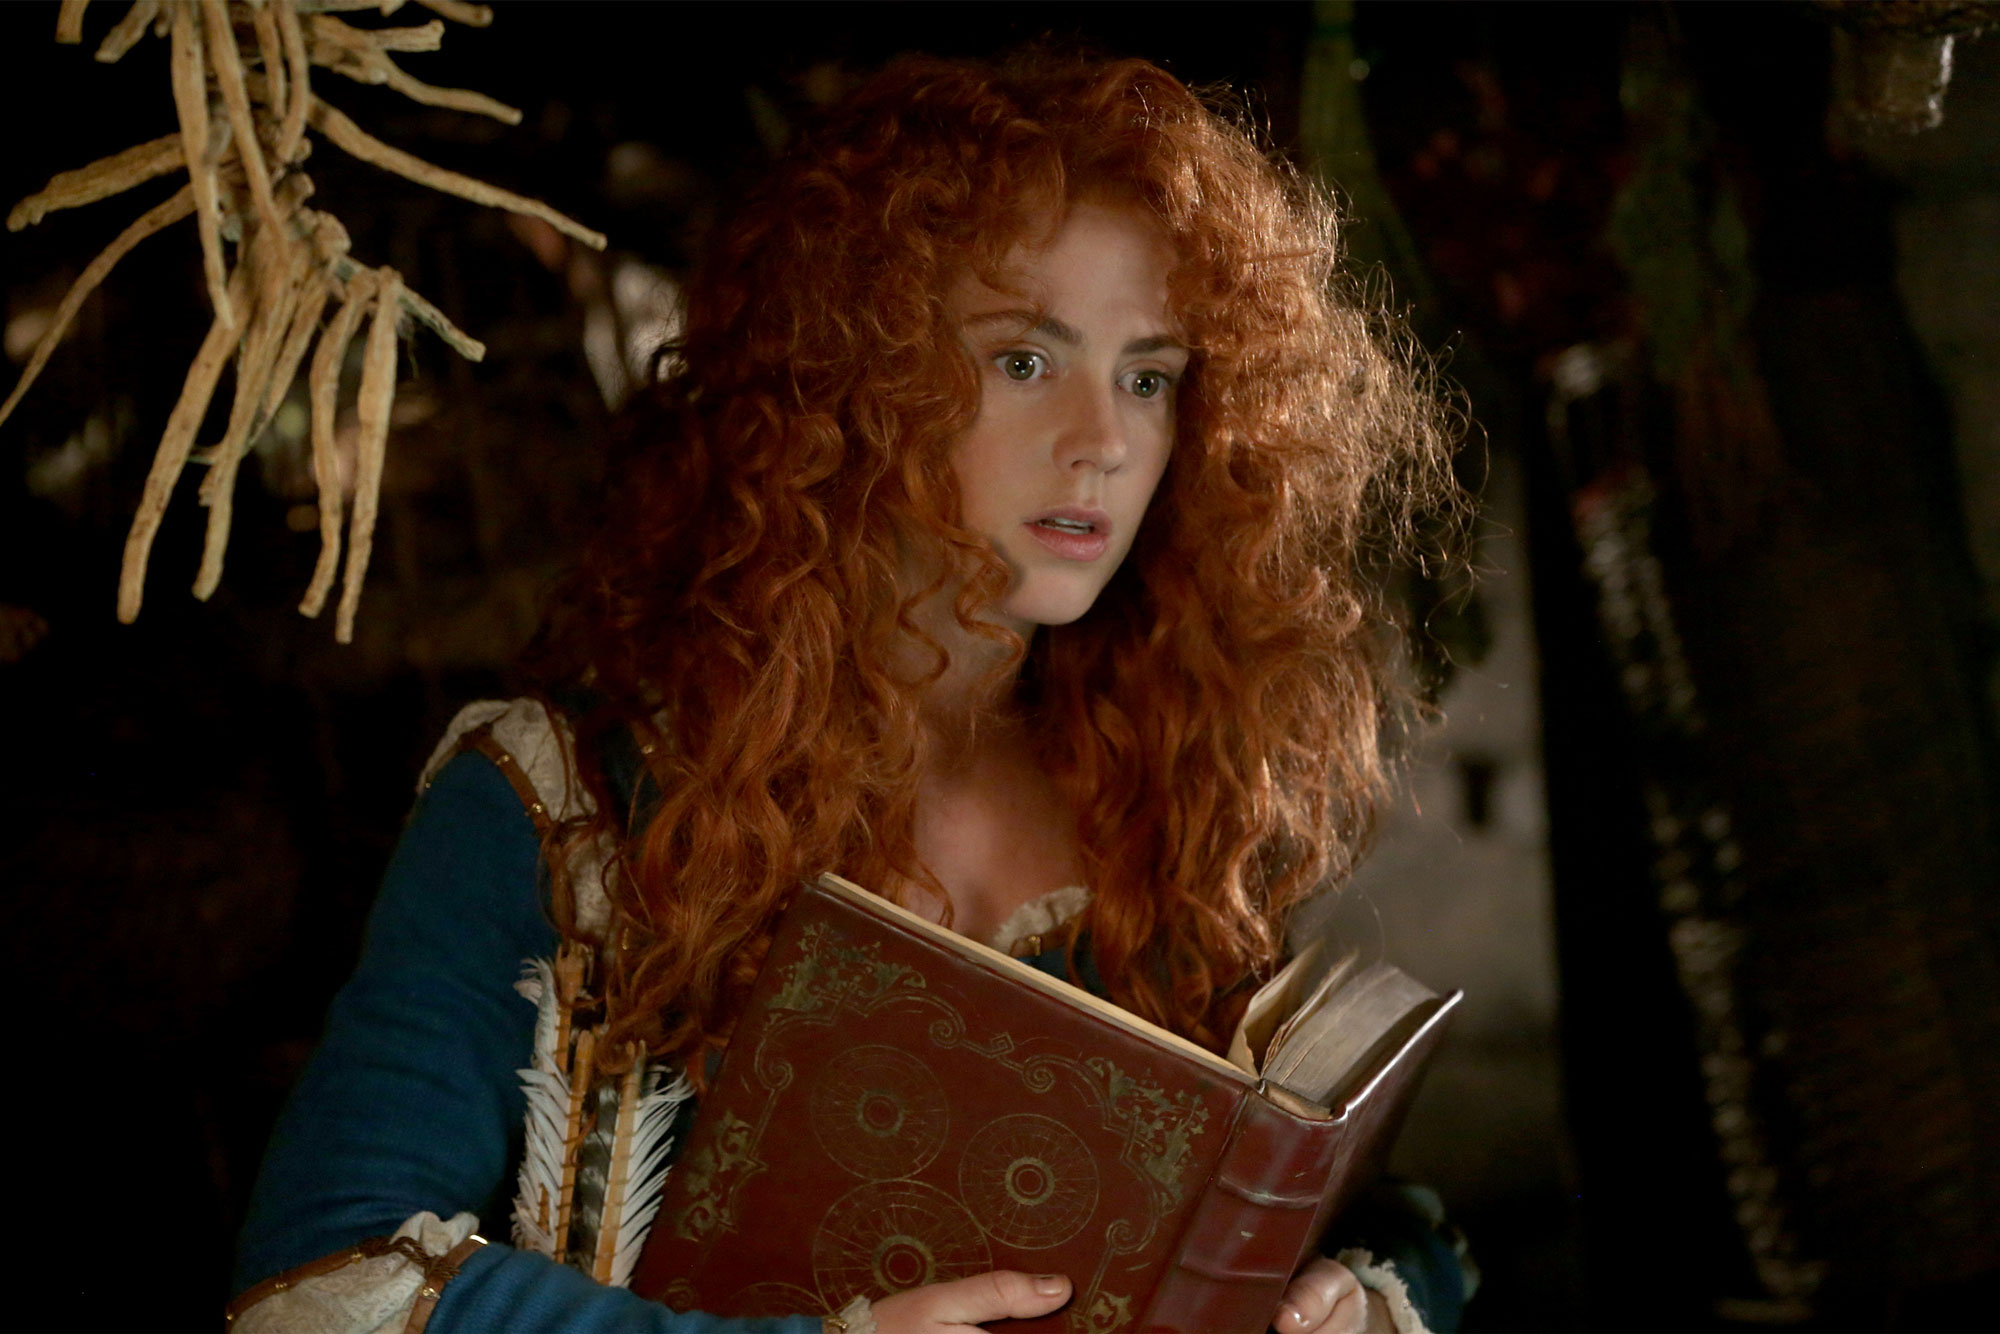 Merida - Once Upon A Time S5E6 - The Bear And The Bow - Review